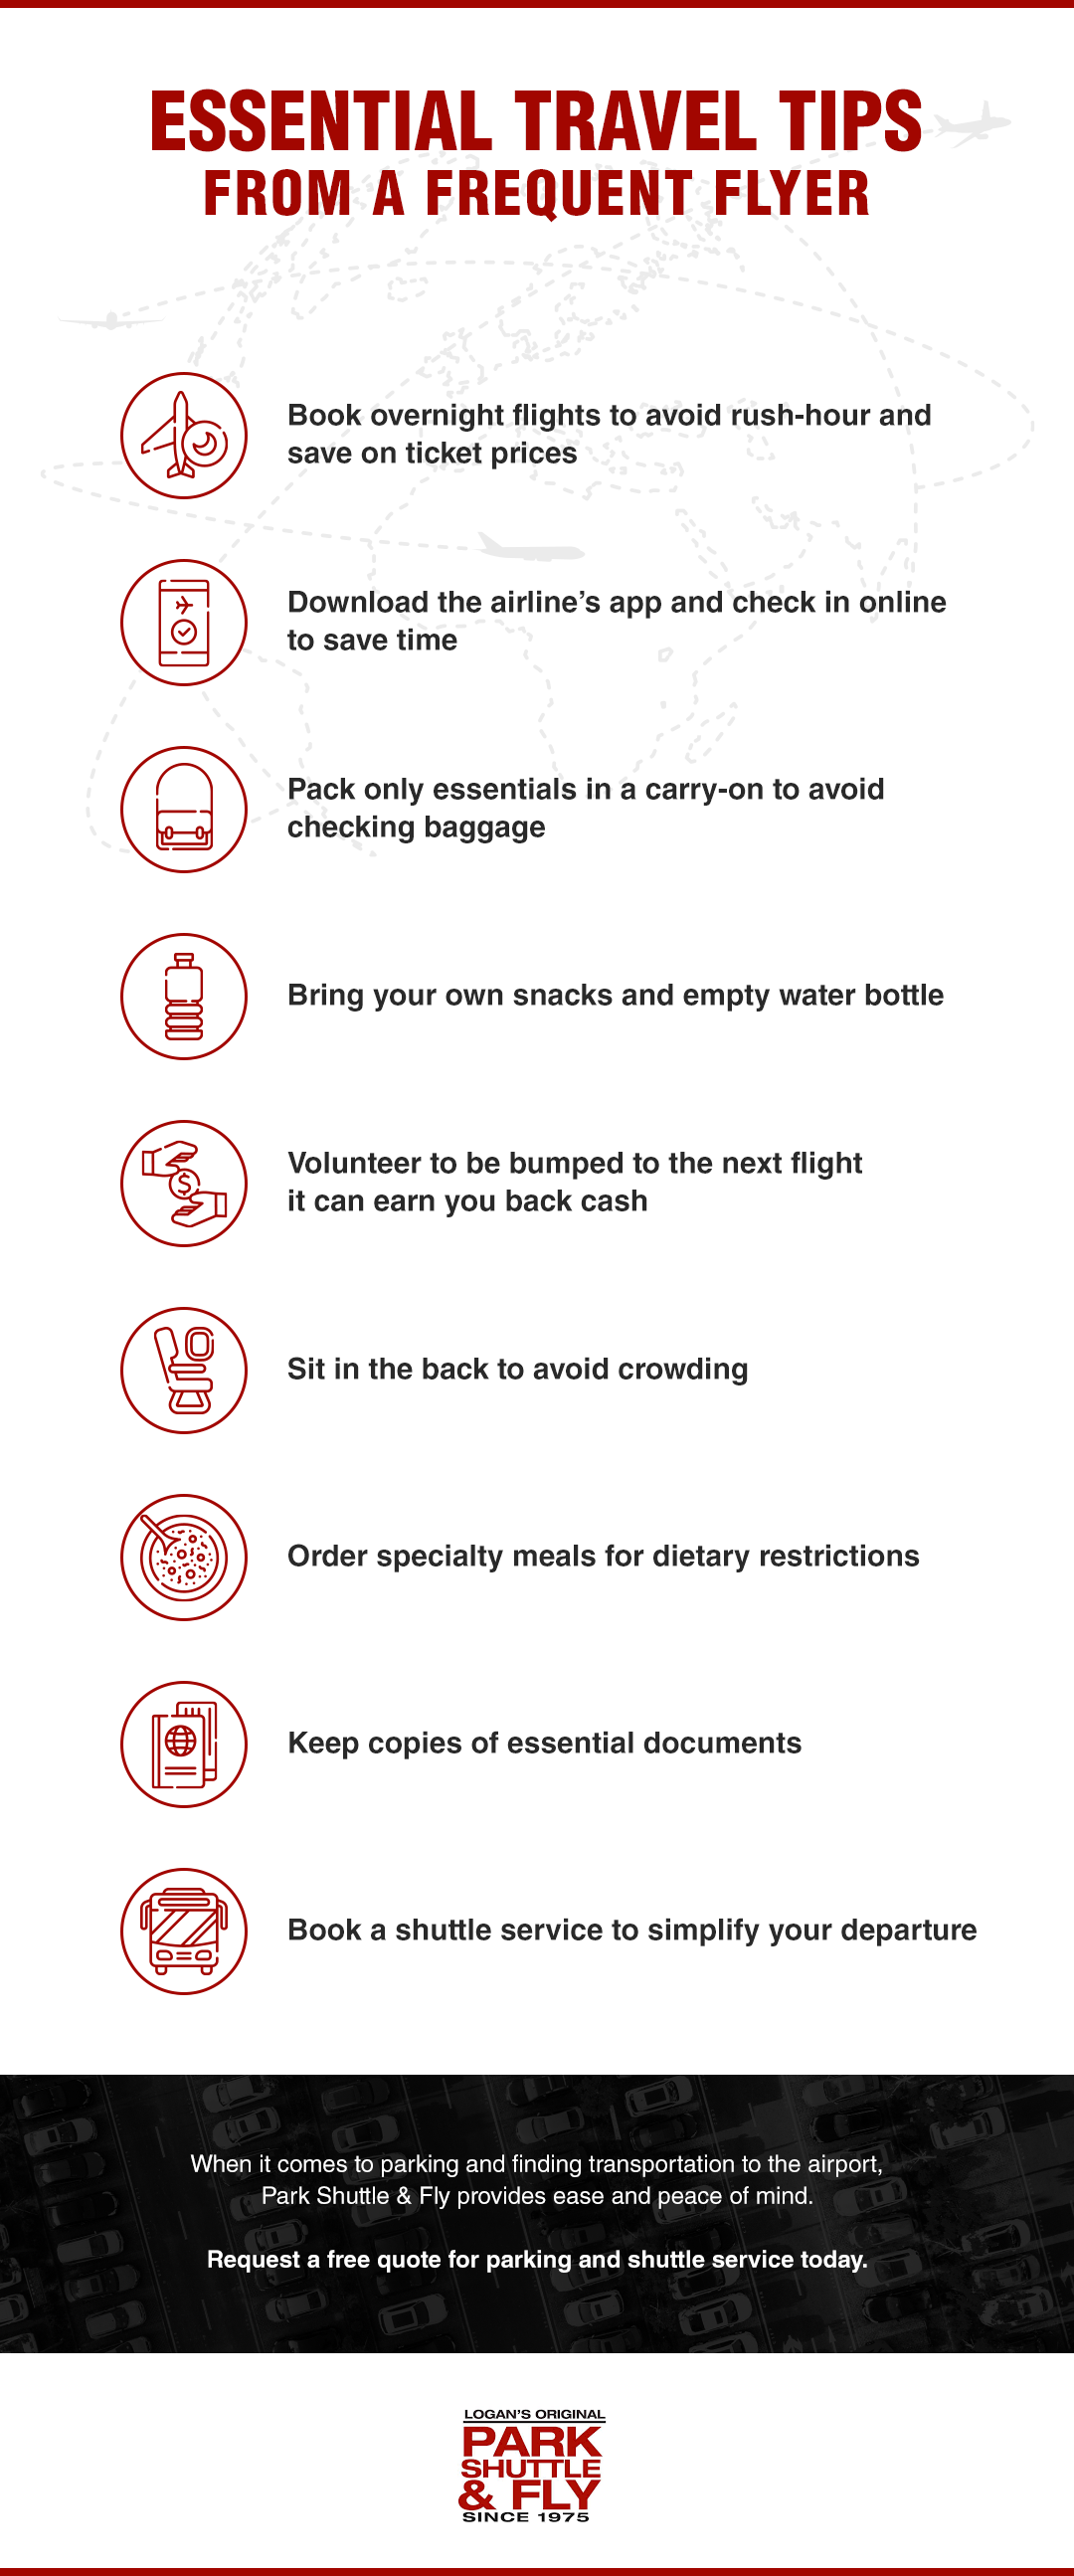 Essential-Travel-Tips-From-a-Frequent-Flyer-000.png